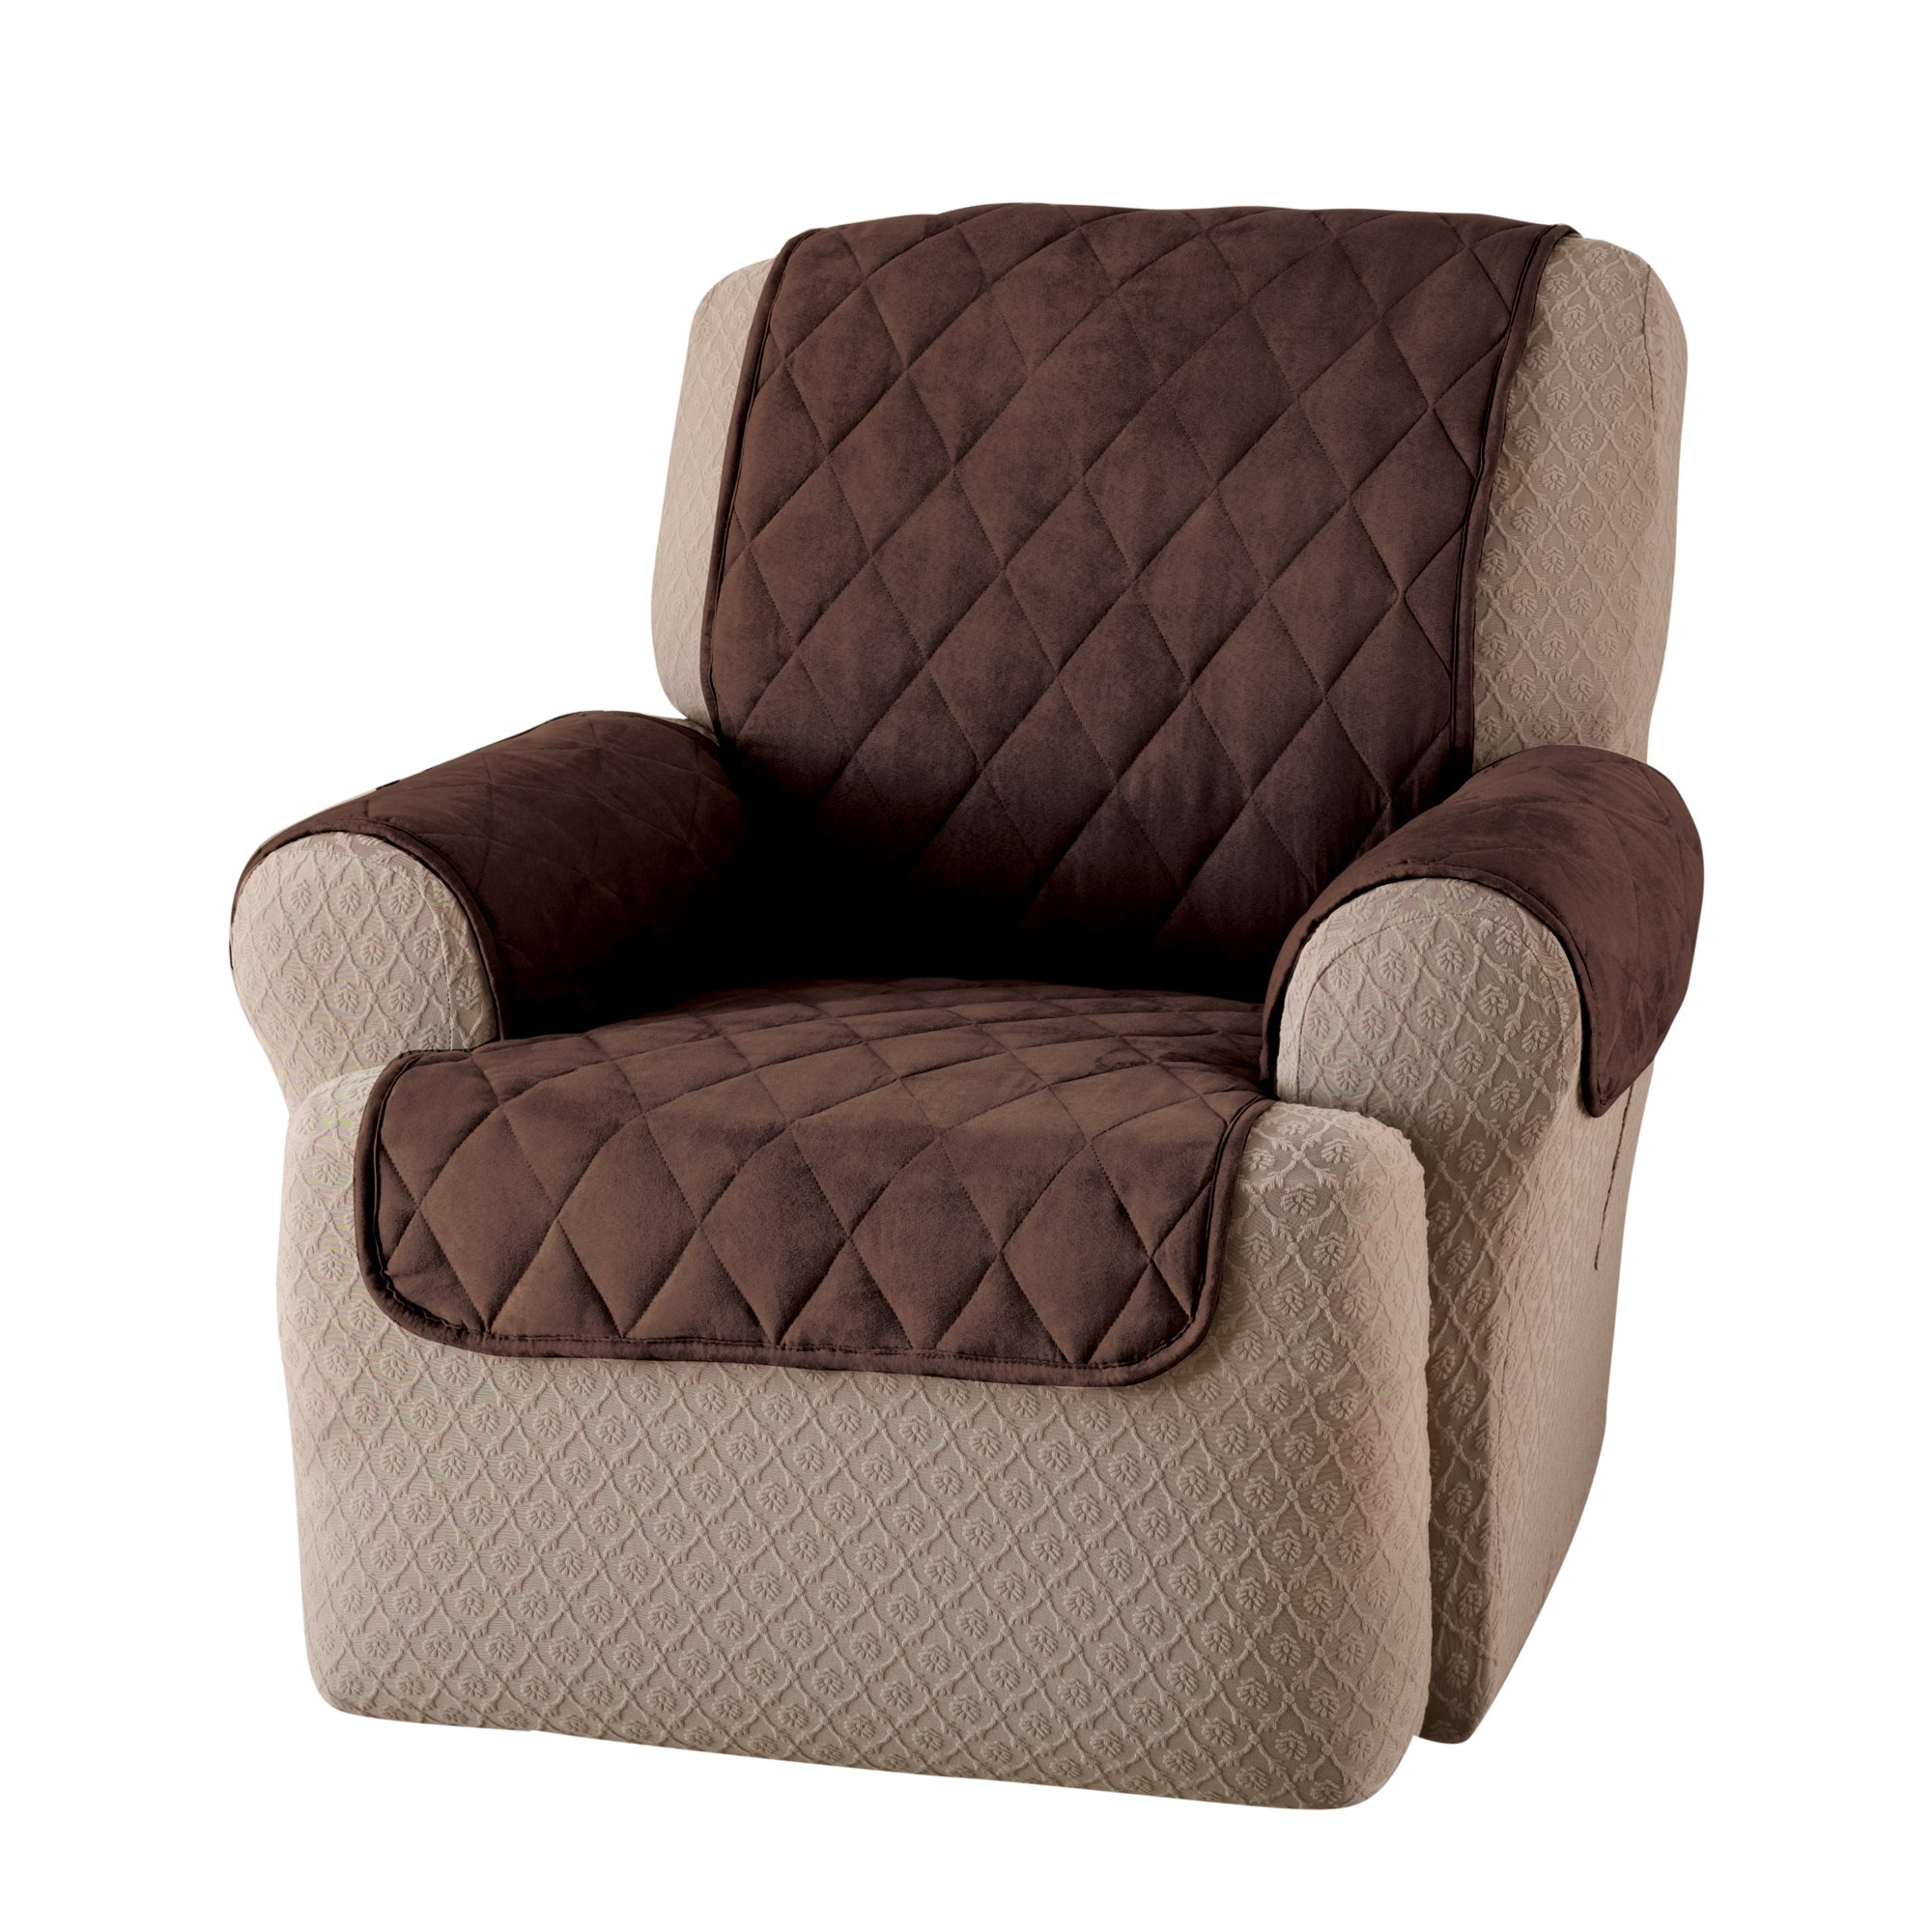 Innovative Textile Solutions Suede Wing Recliner Protector, Chocolate by Innovative Textile Solutions